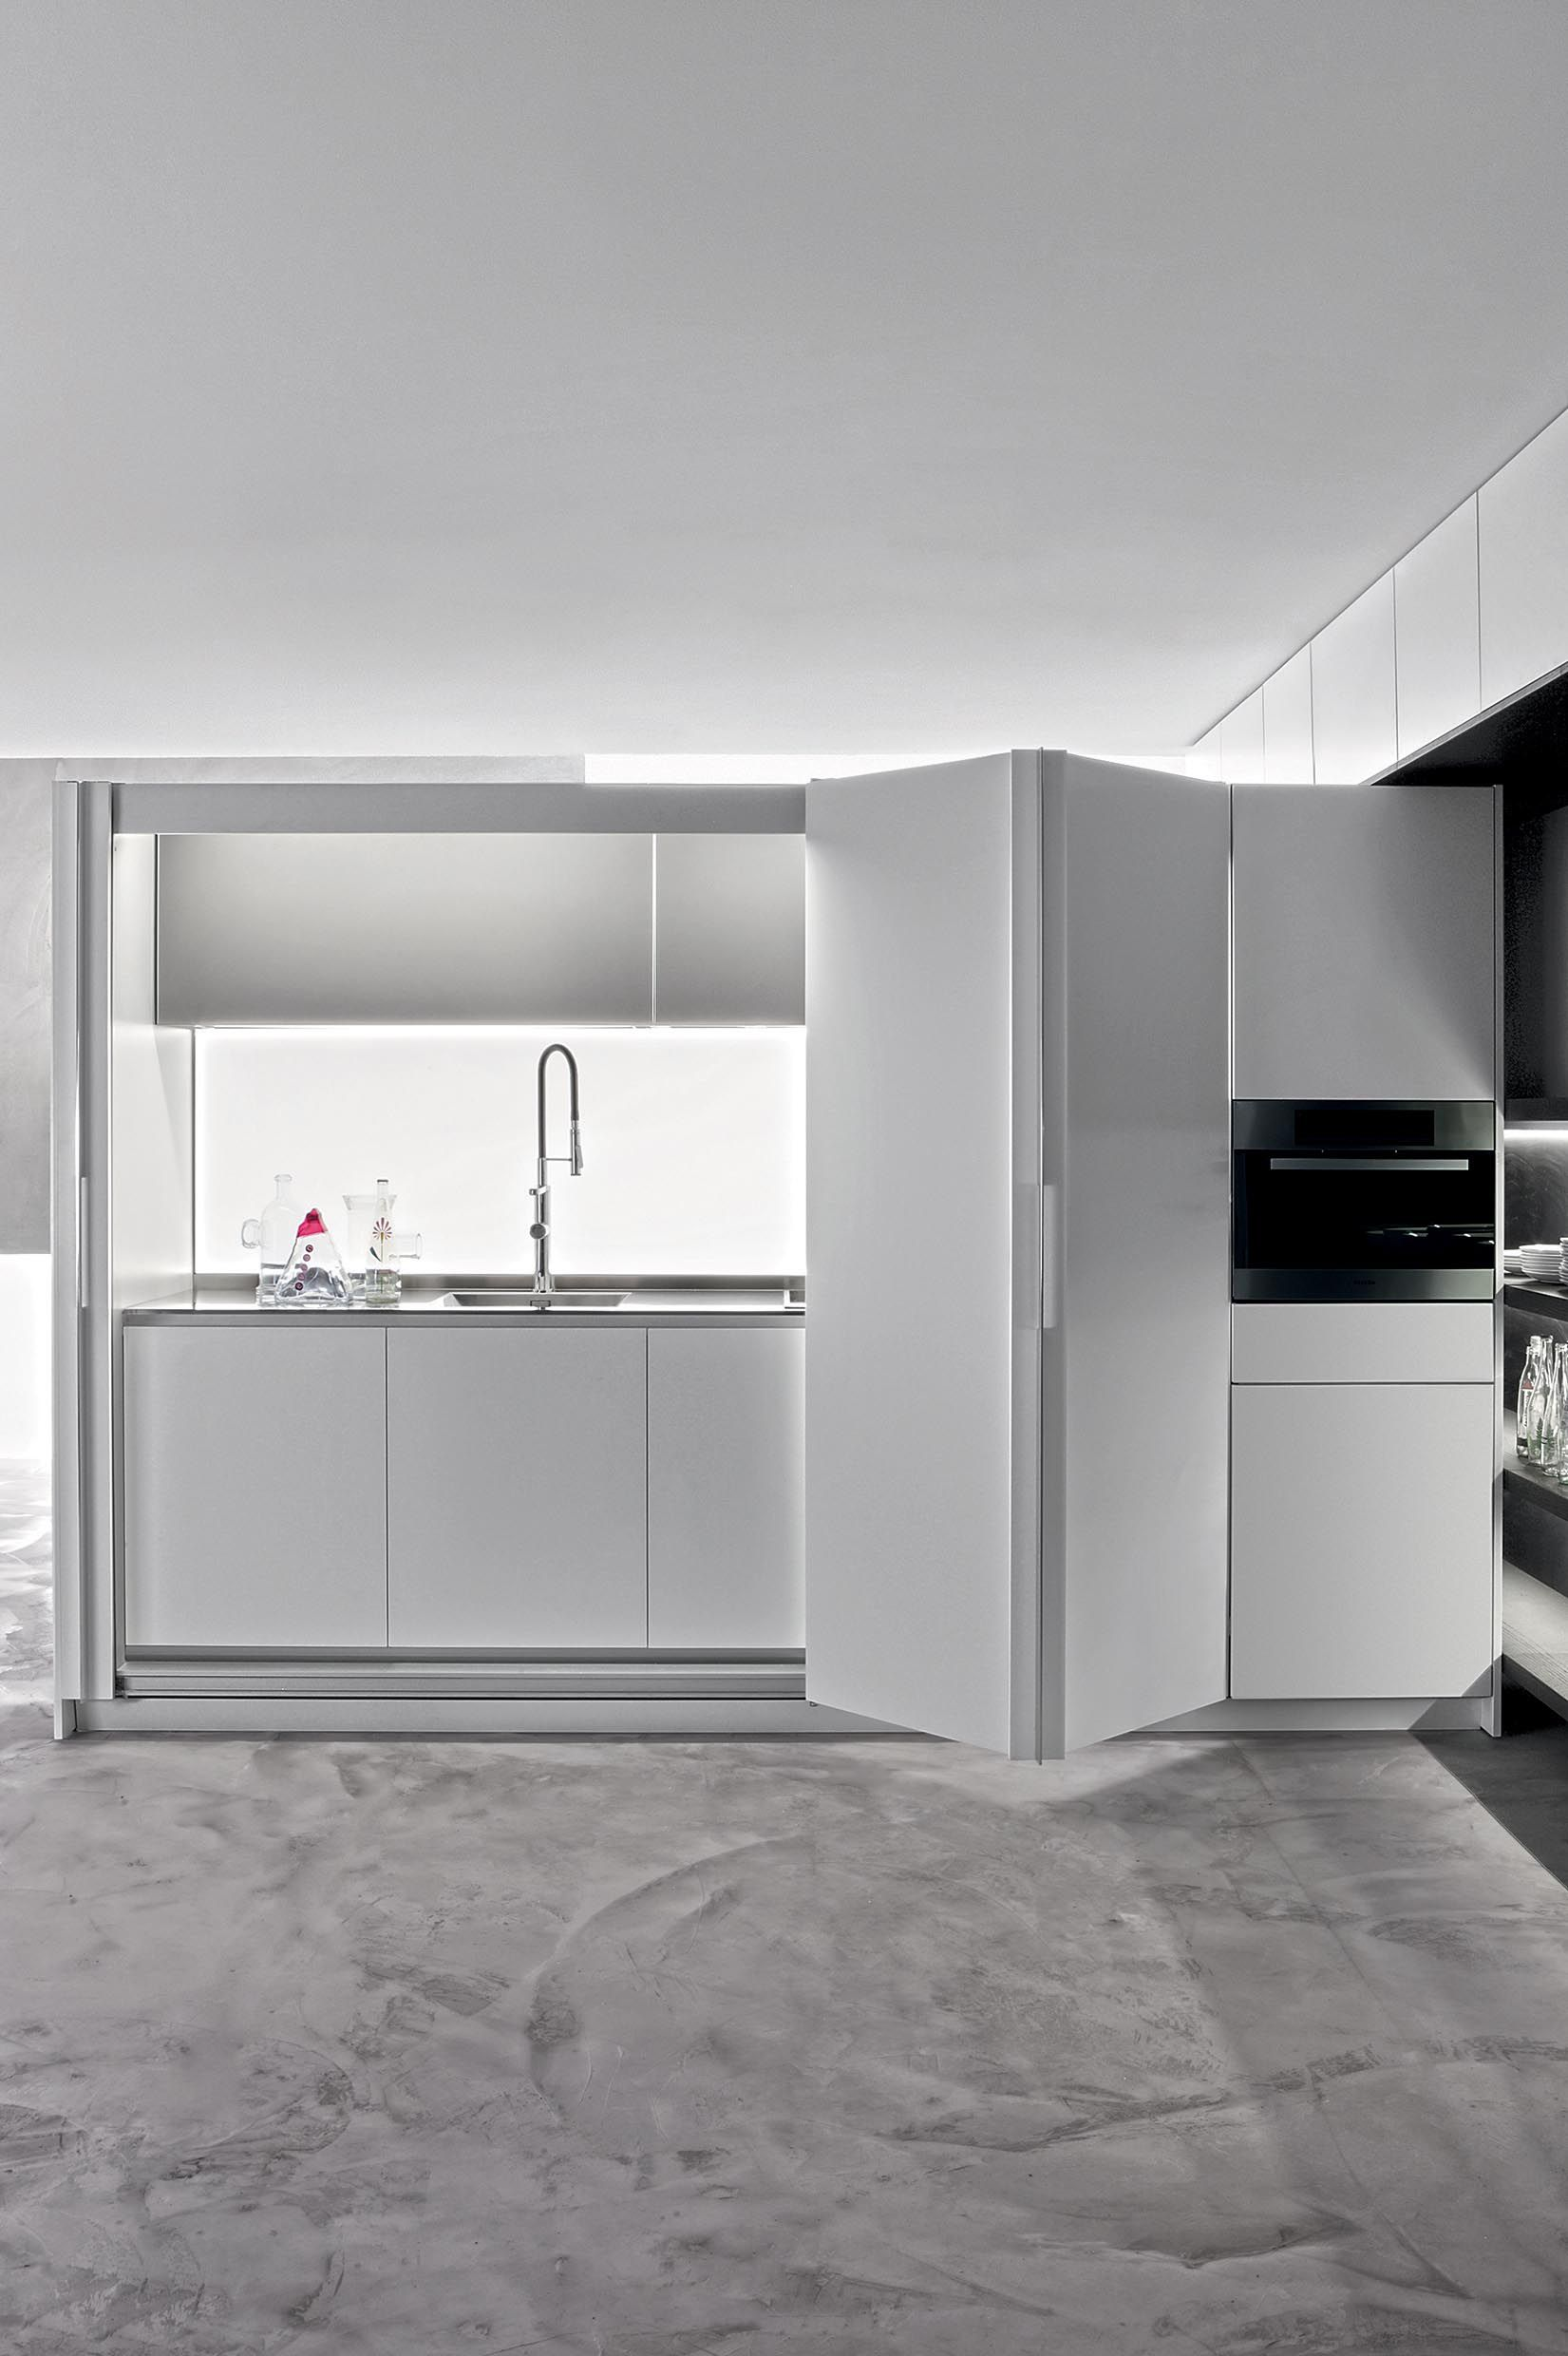 Cucina In Dada Tivalì Kitchens Dada Kitchen In 2019 Interior Design Kitchen